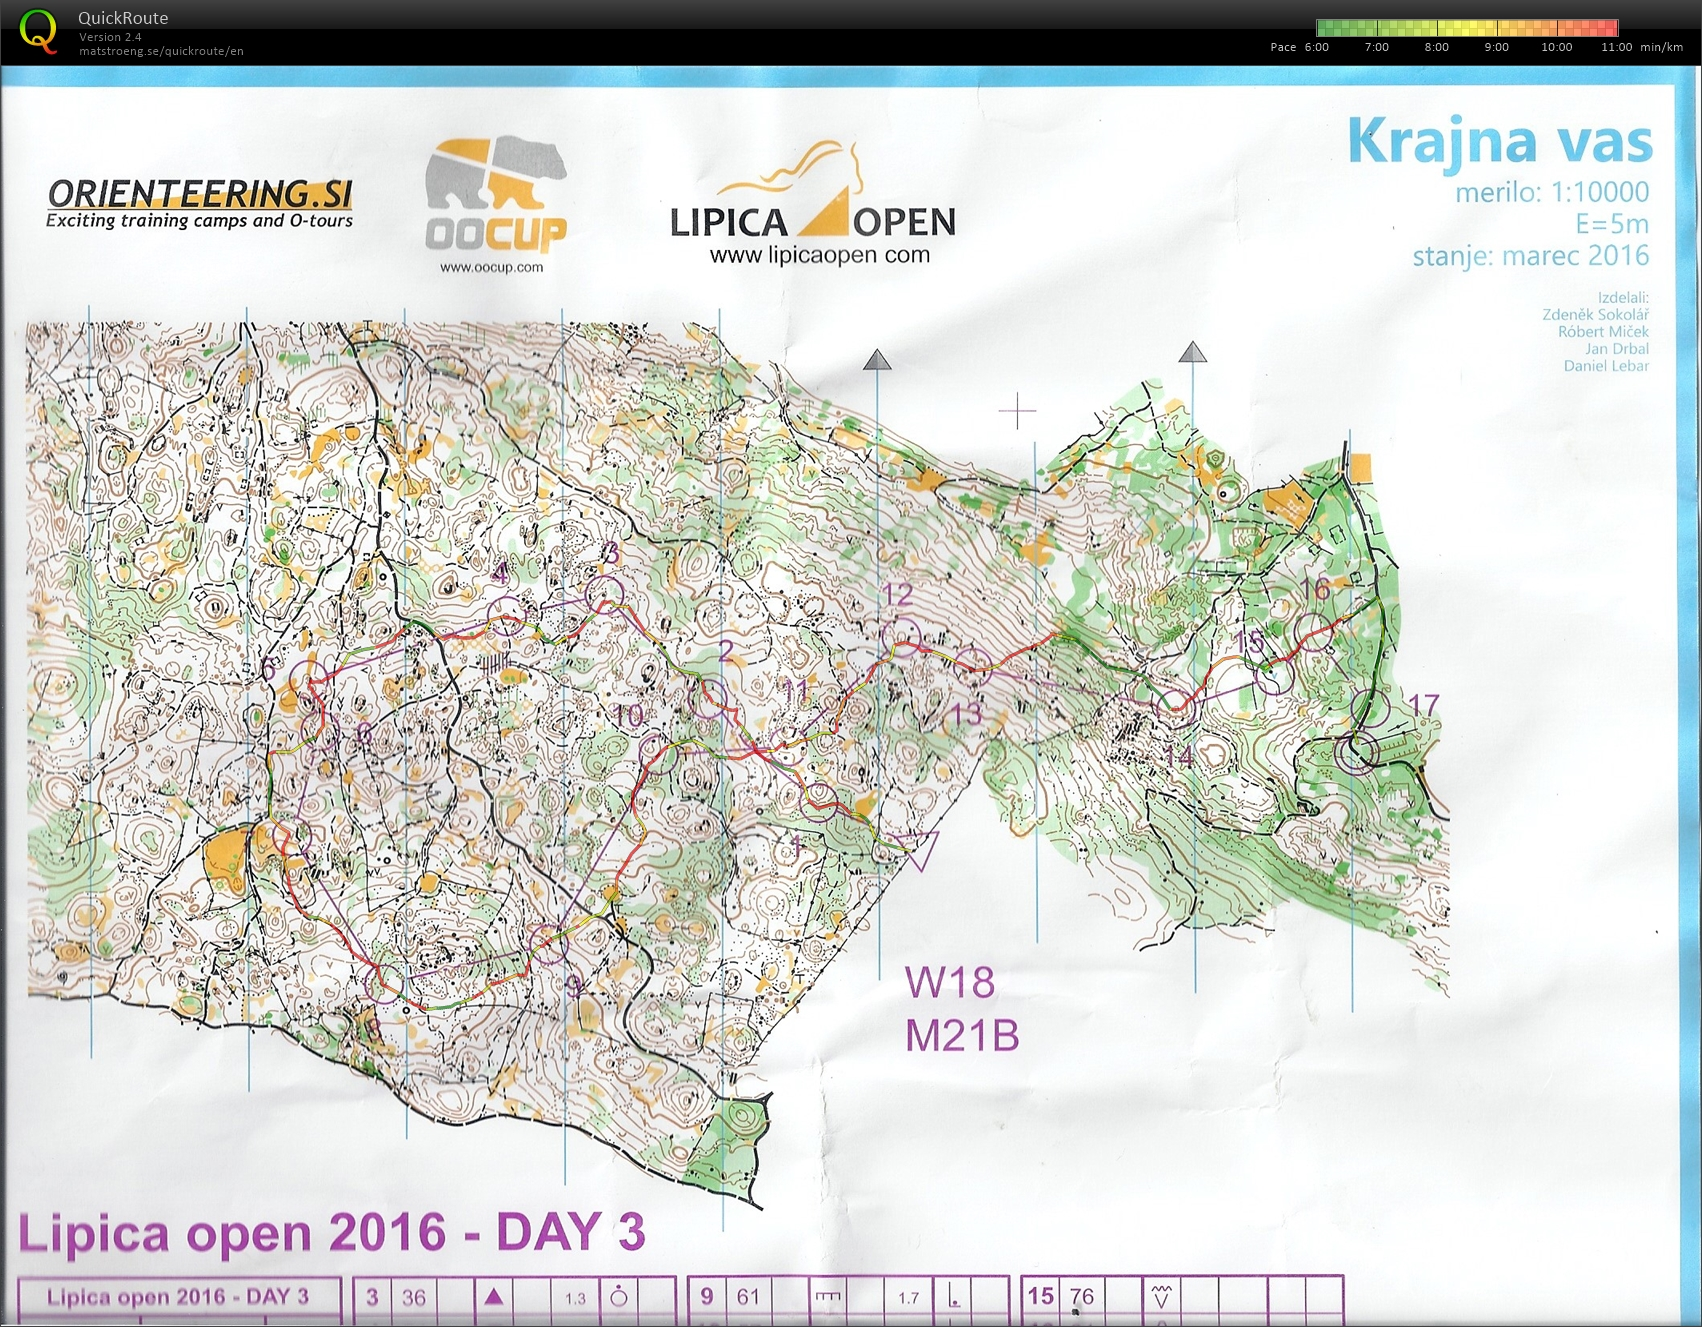 Lipica Open - day 3 (14. 03. 2016)